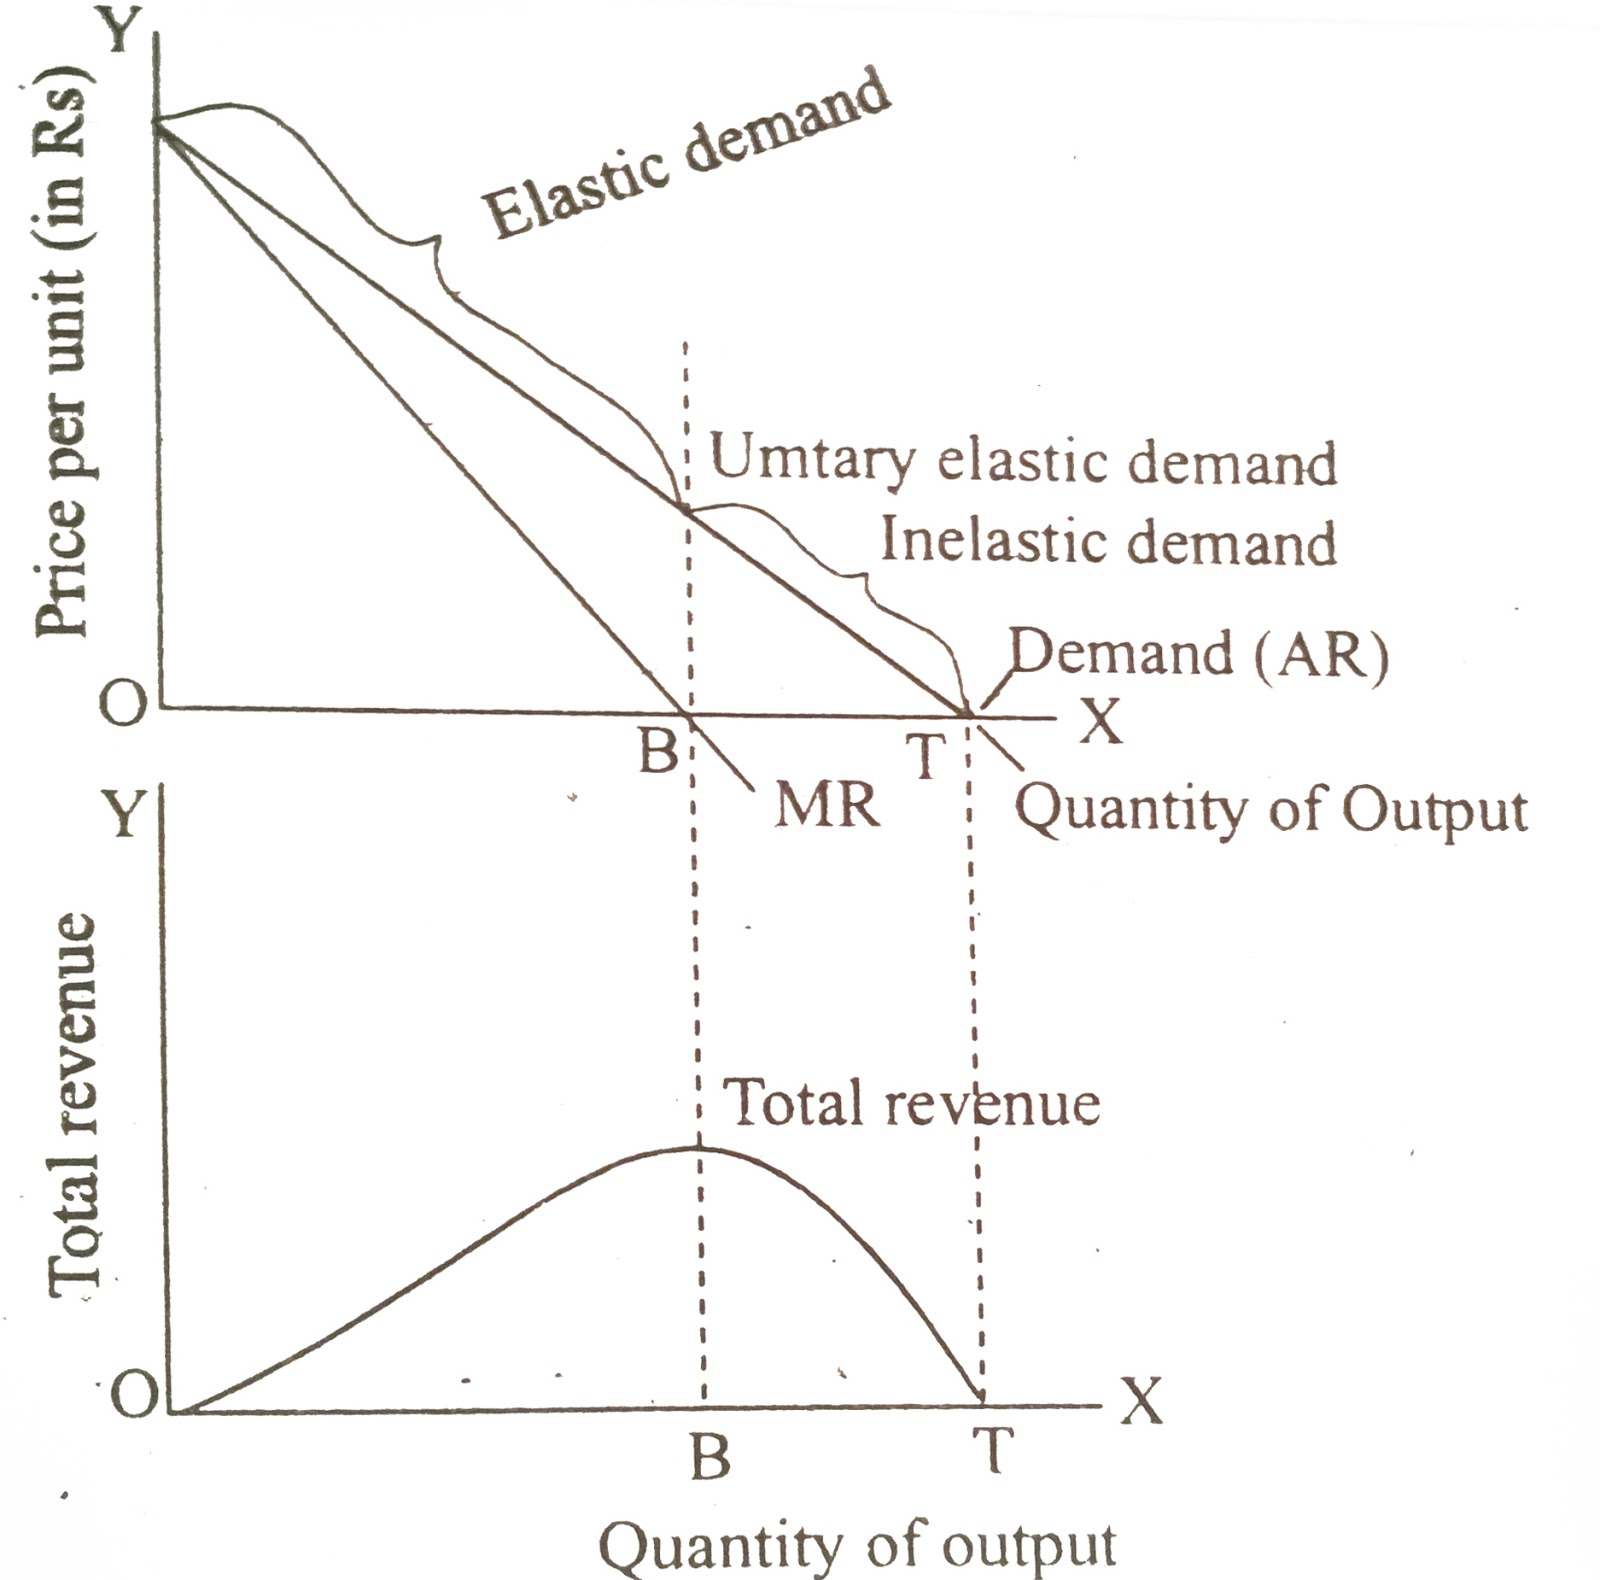 hight resolution of the relations among tr mr and price elasticity of demand are reviewed in the figure the top half of the diagram shows a liner demand or ar curve and a